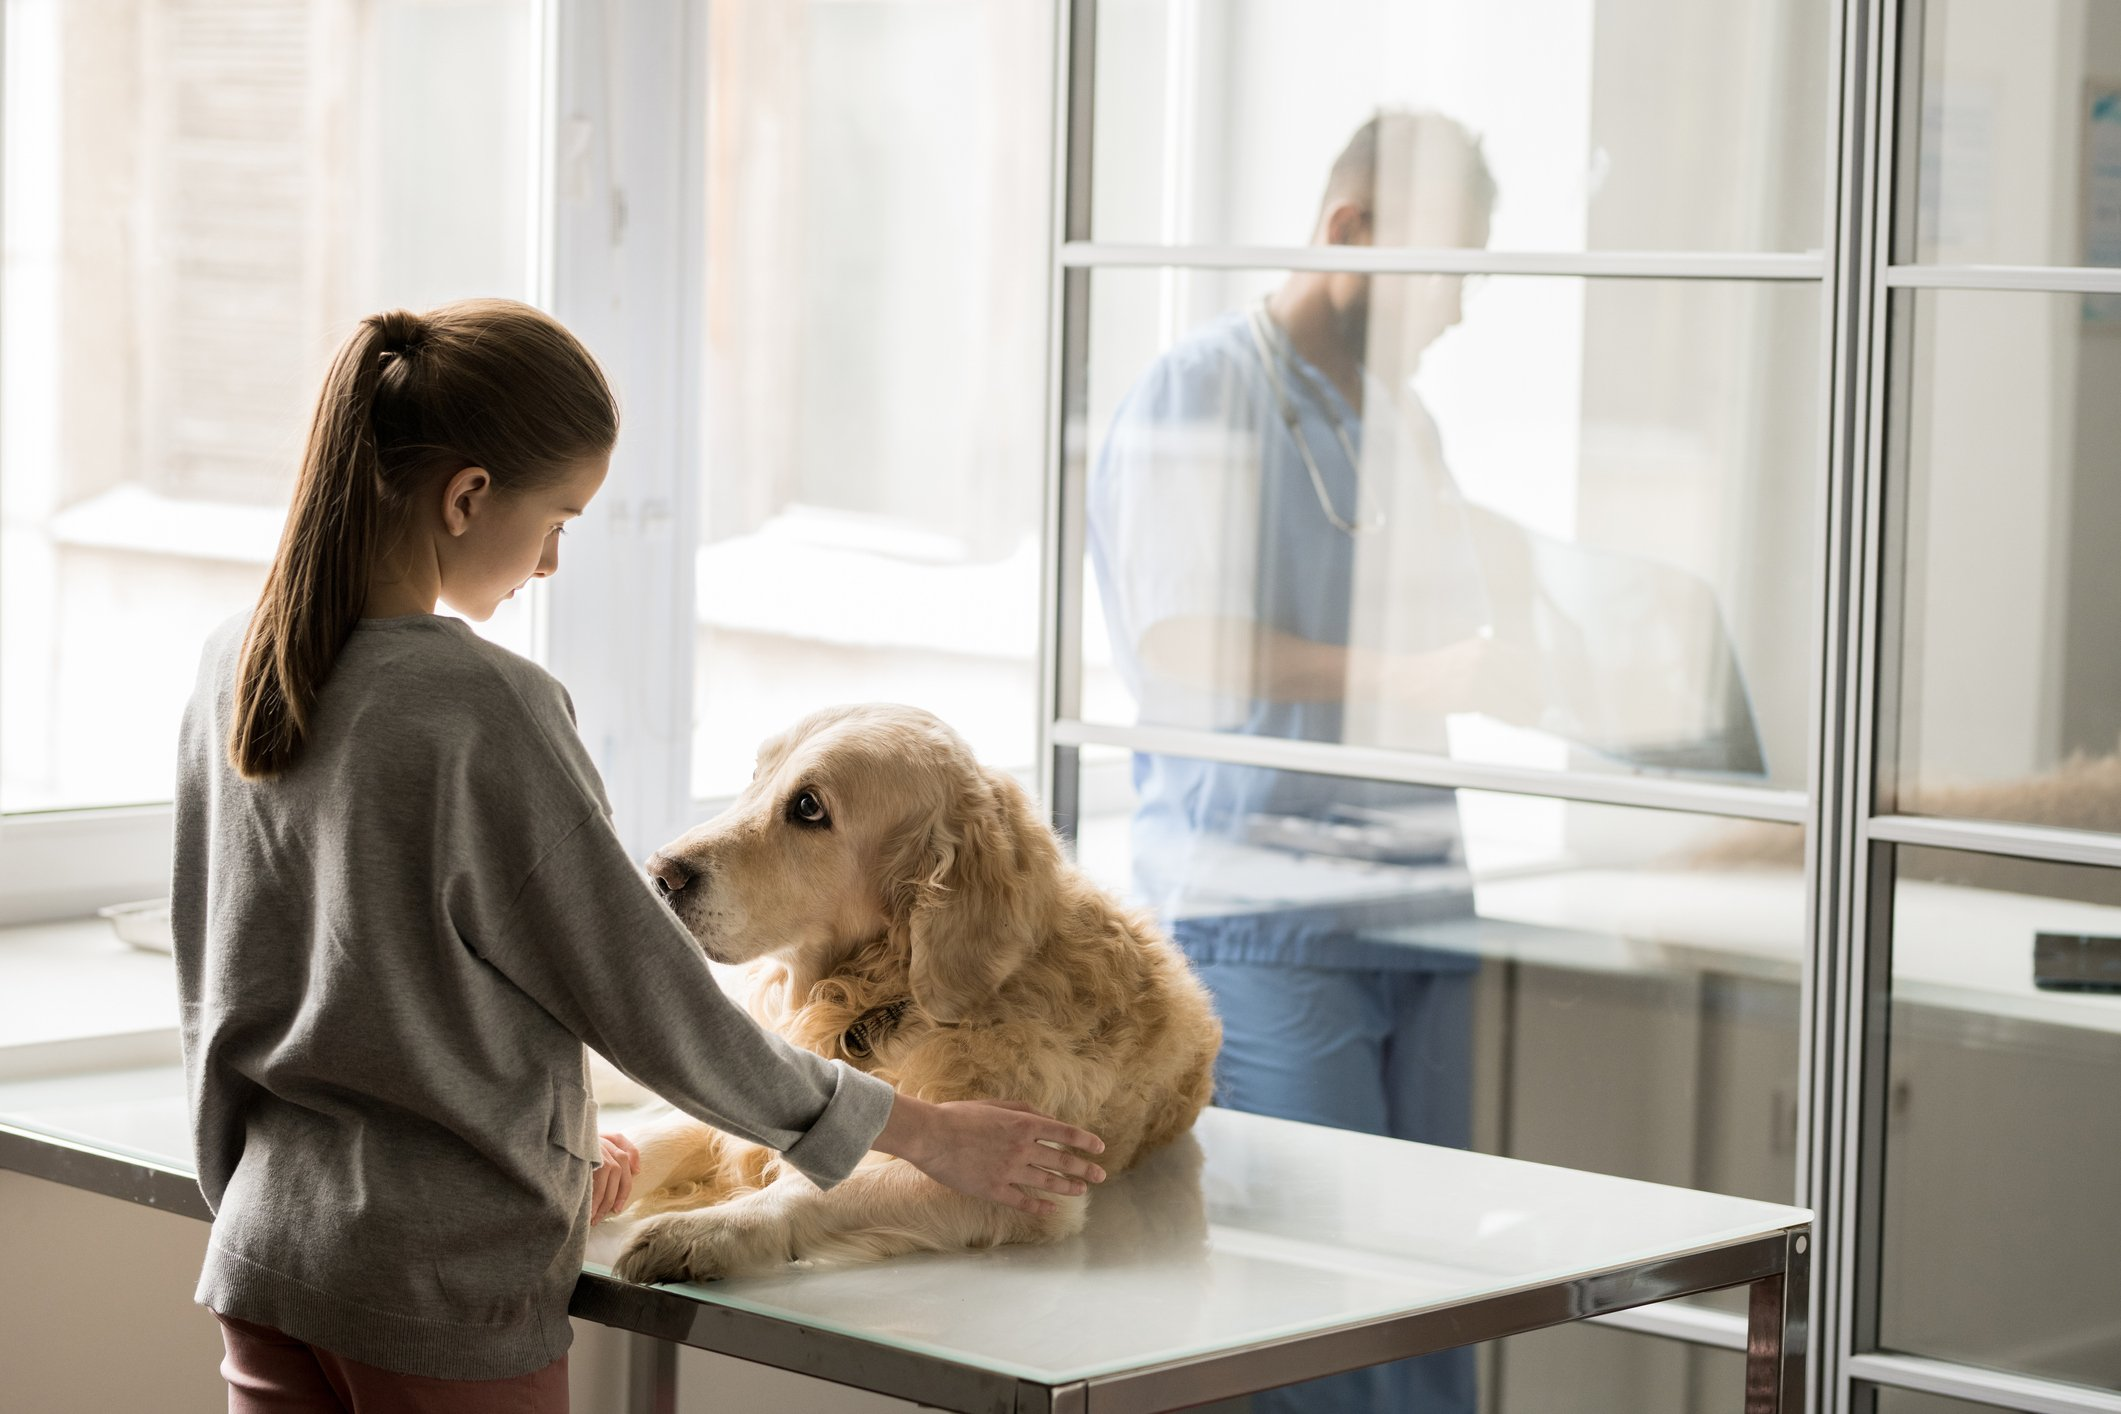 A pet owner comforts her old golden retriever on the vet's examining table